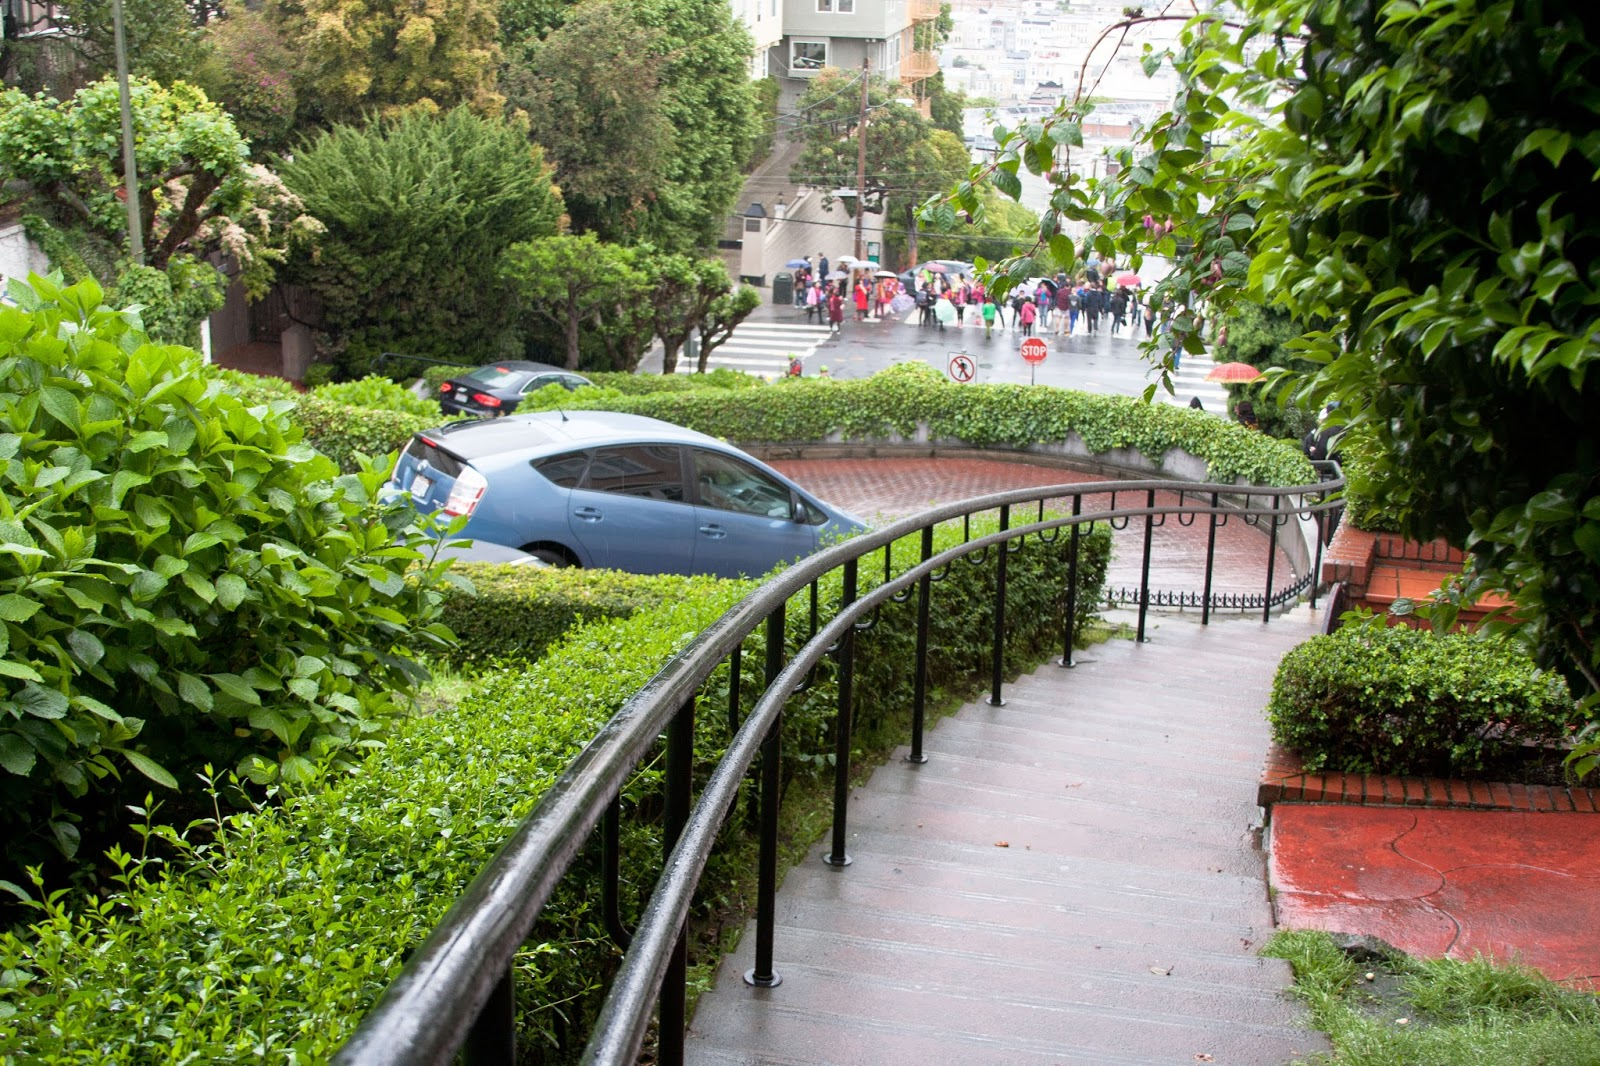 Lombard street with our Prius.